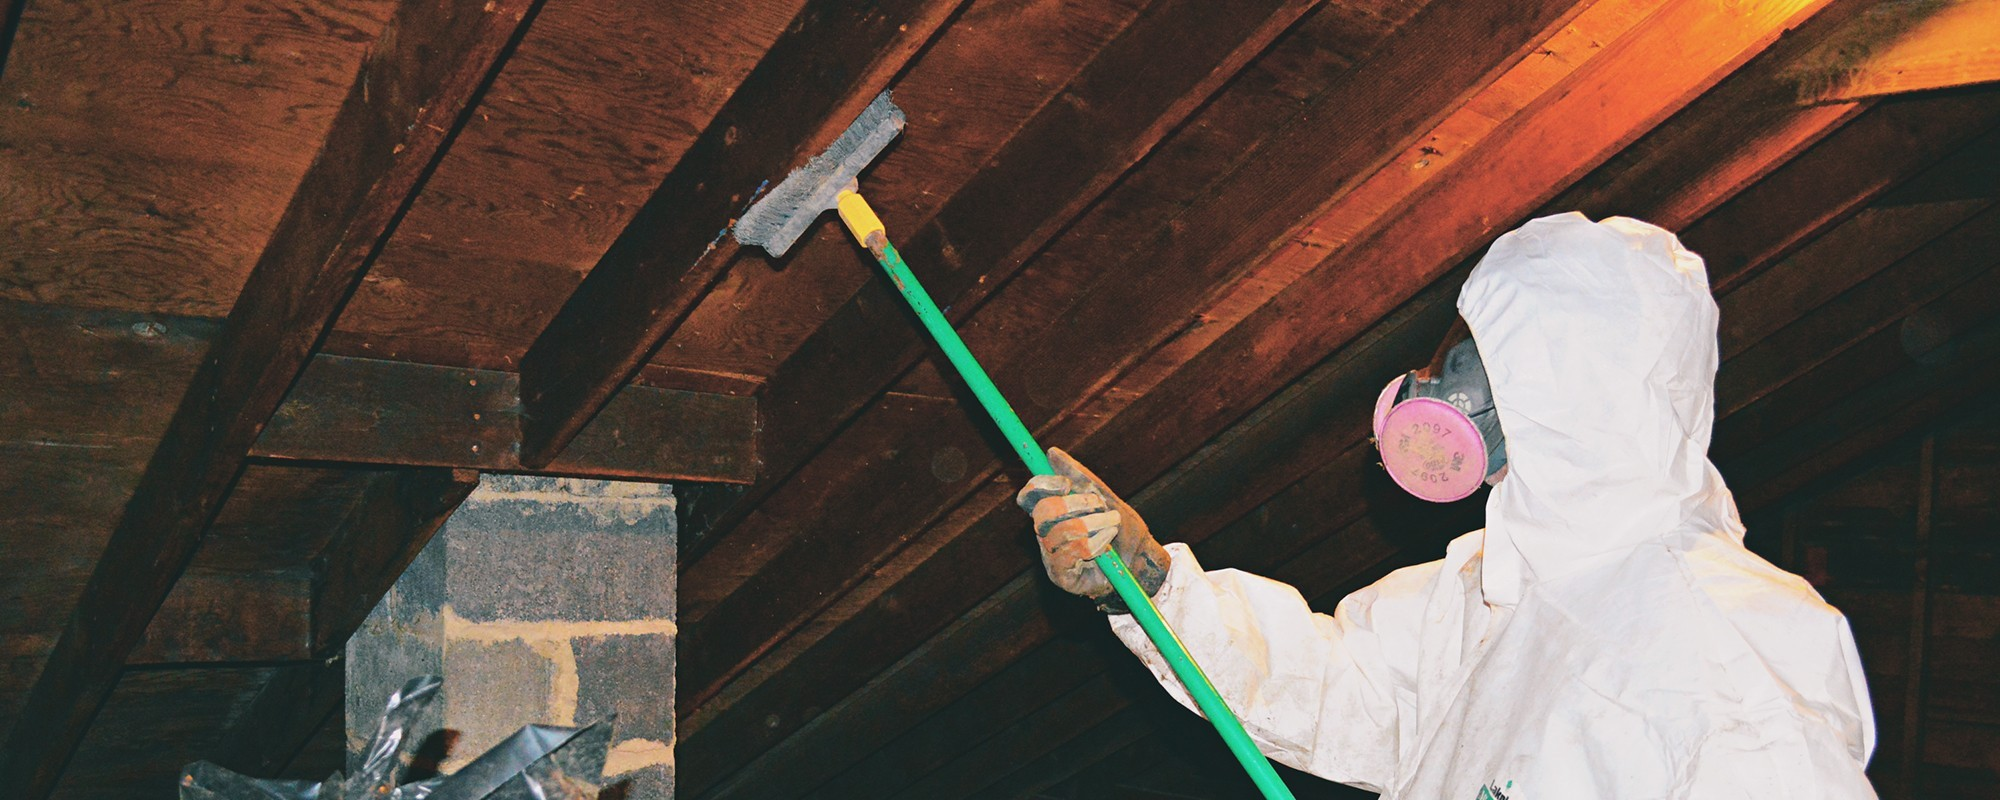 Roof damage mold growth nj mastertech environmental leaky roof attic mold removal nj solutioingenieria Images